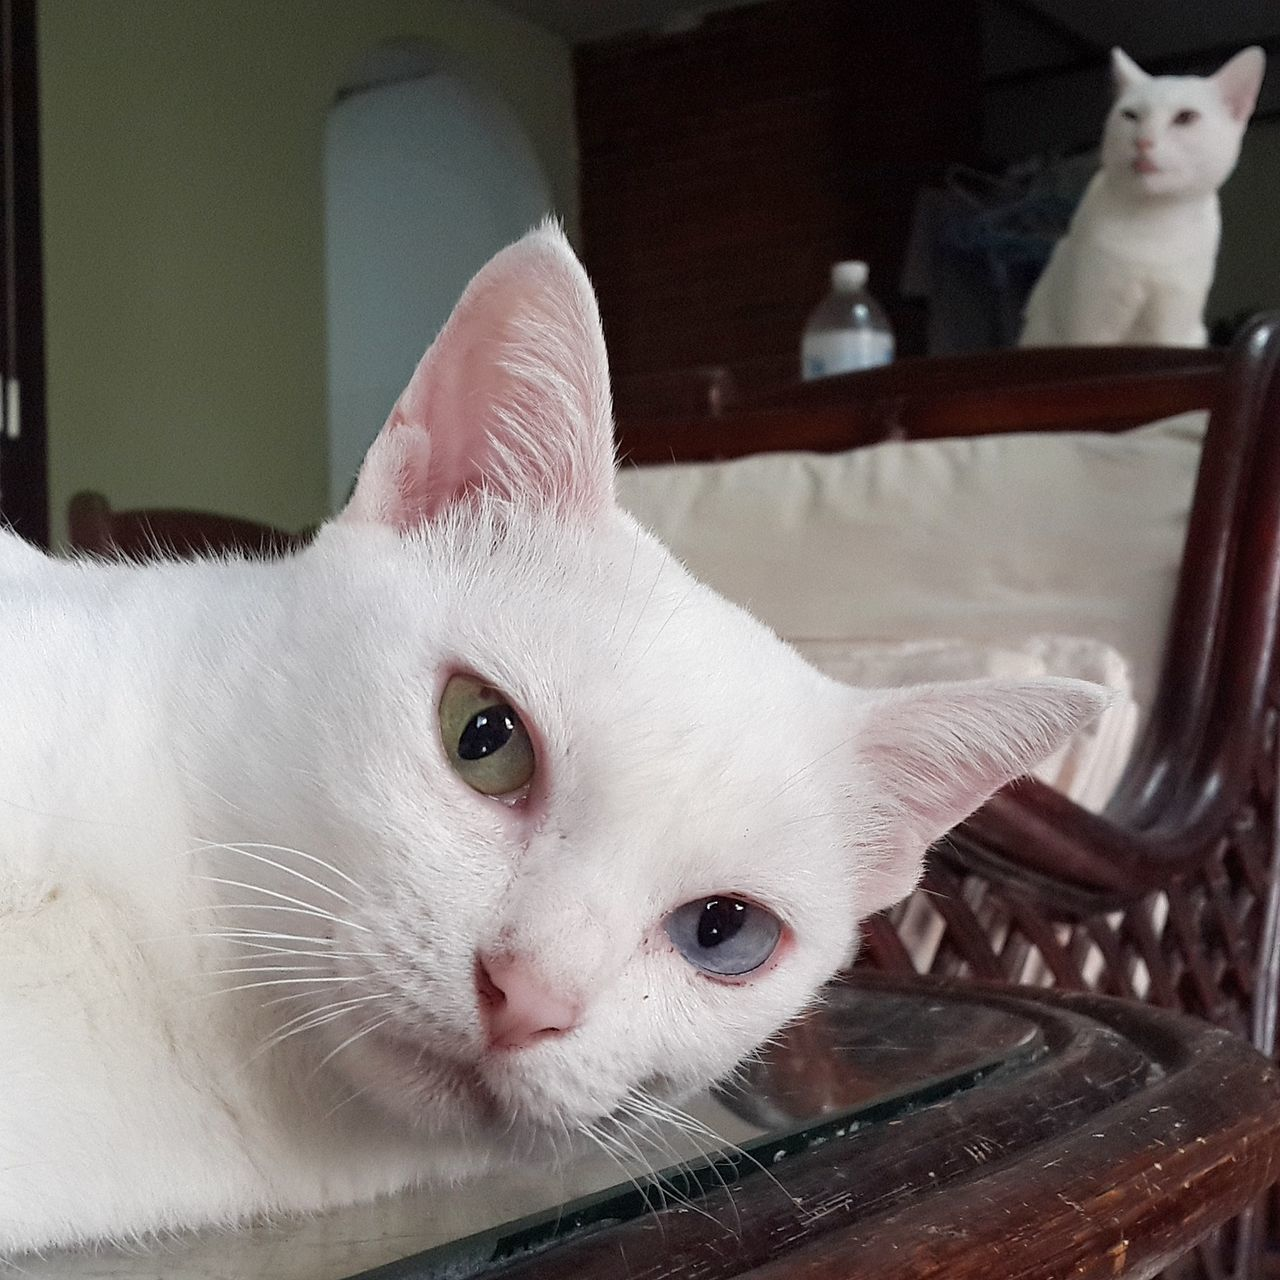 domestic cat, pets, animal themes, domestic animals, one animal, mammal, feline, whisker, indoors, cat, looking at camera, portrait, white color, home interior, no people, close-up, day